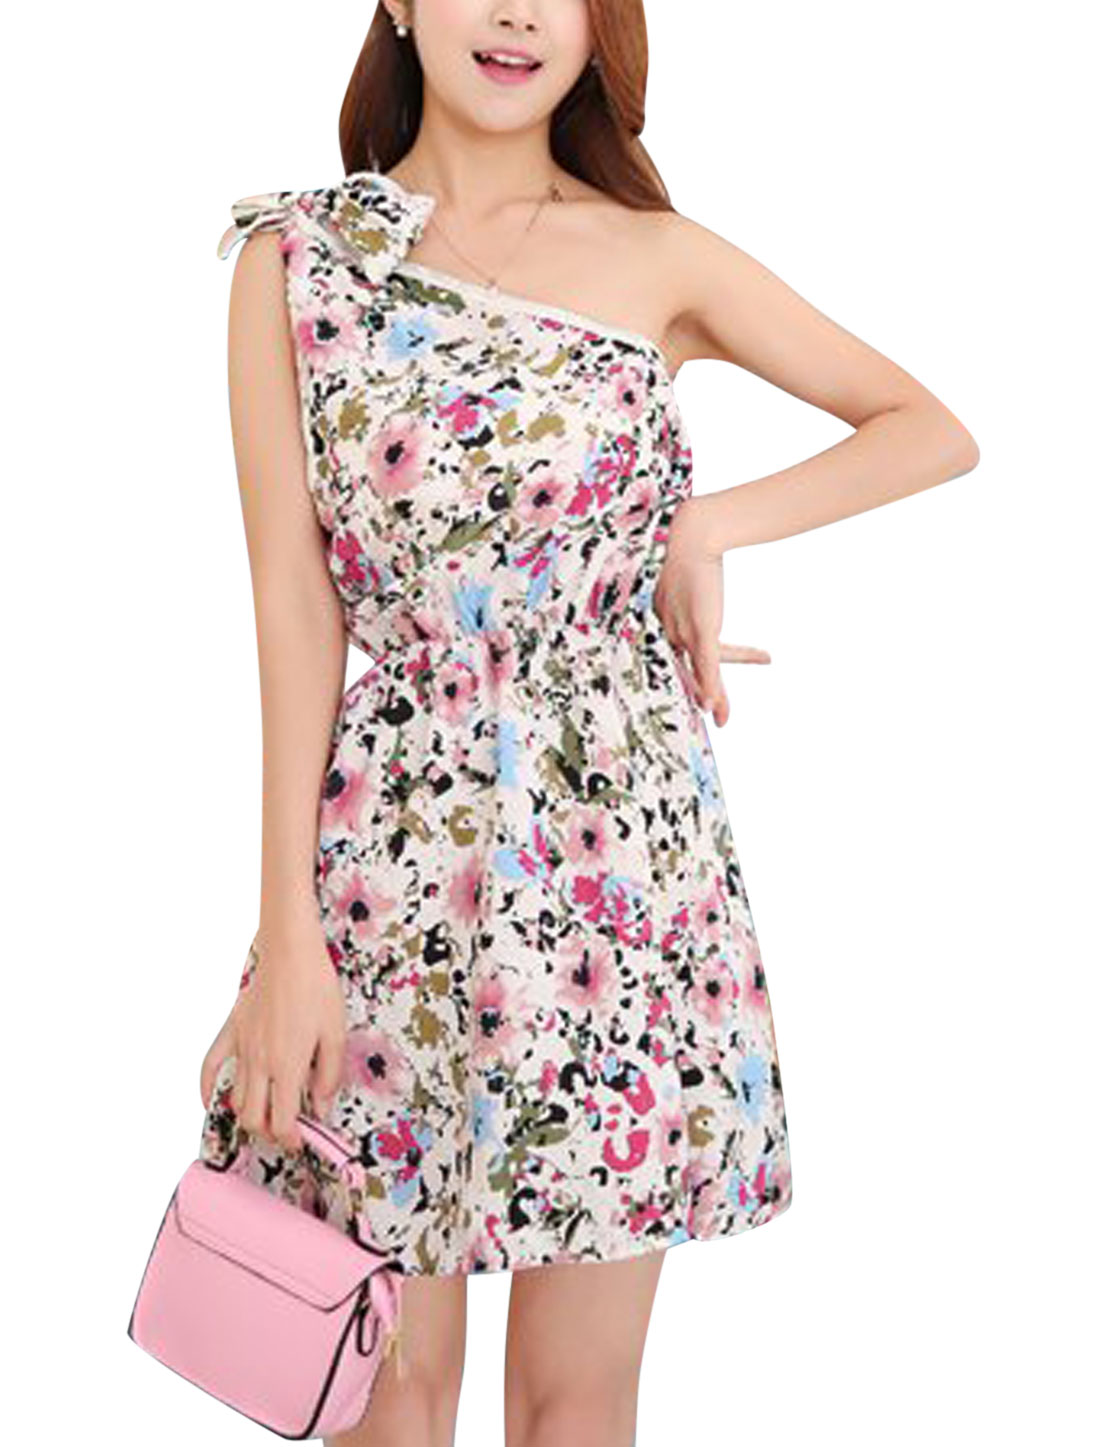 Women Floral Novelty Print Self Tie Shoulder Beach Dresses Pink White XS